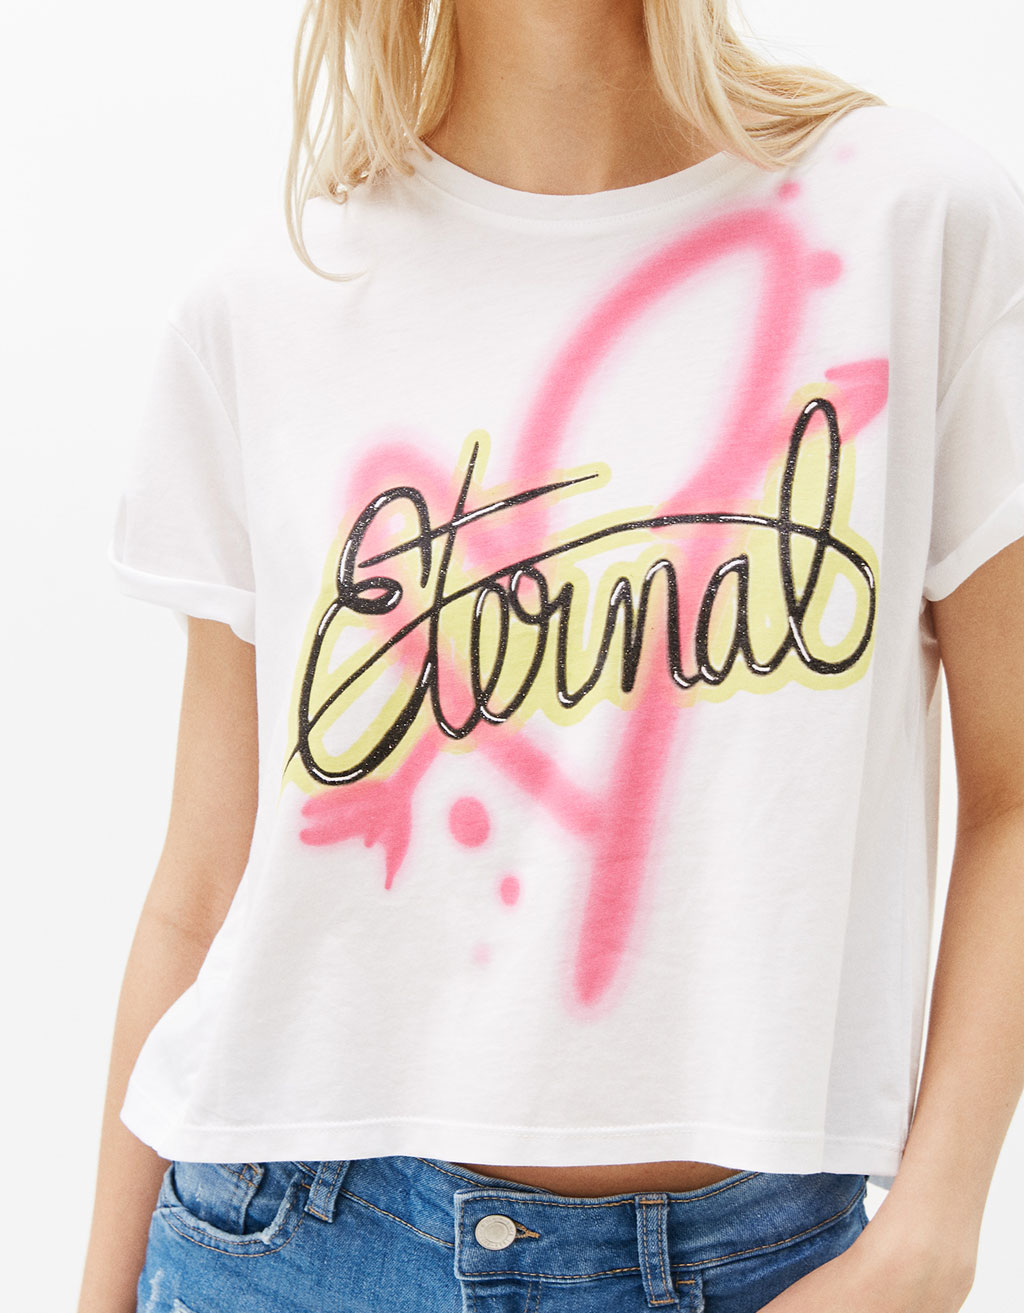 Graffiti t-shirt with back vent